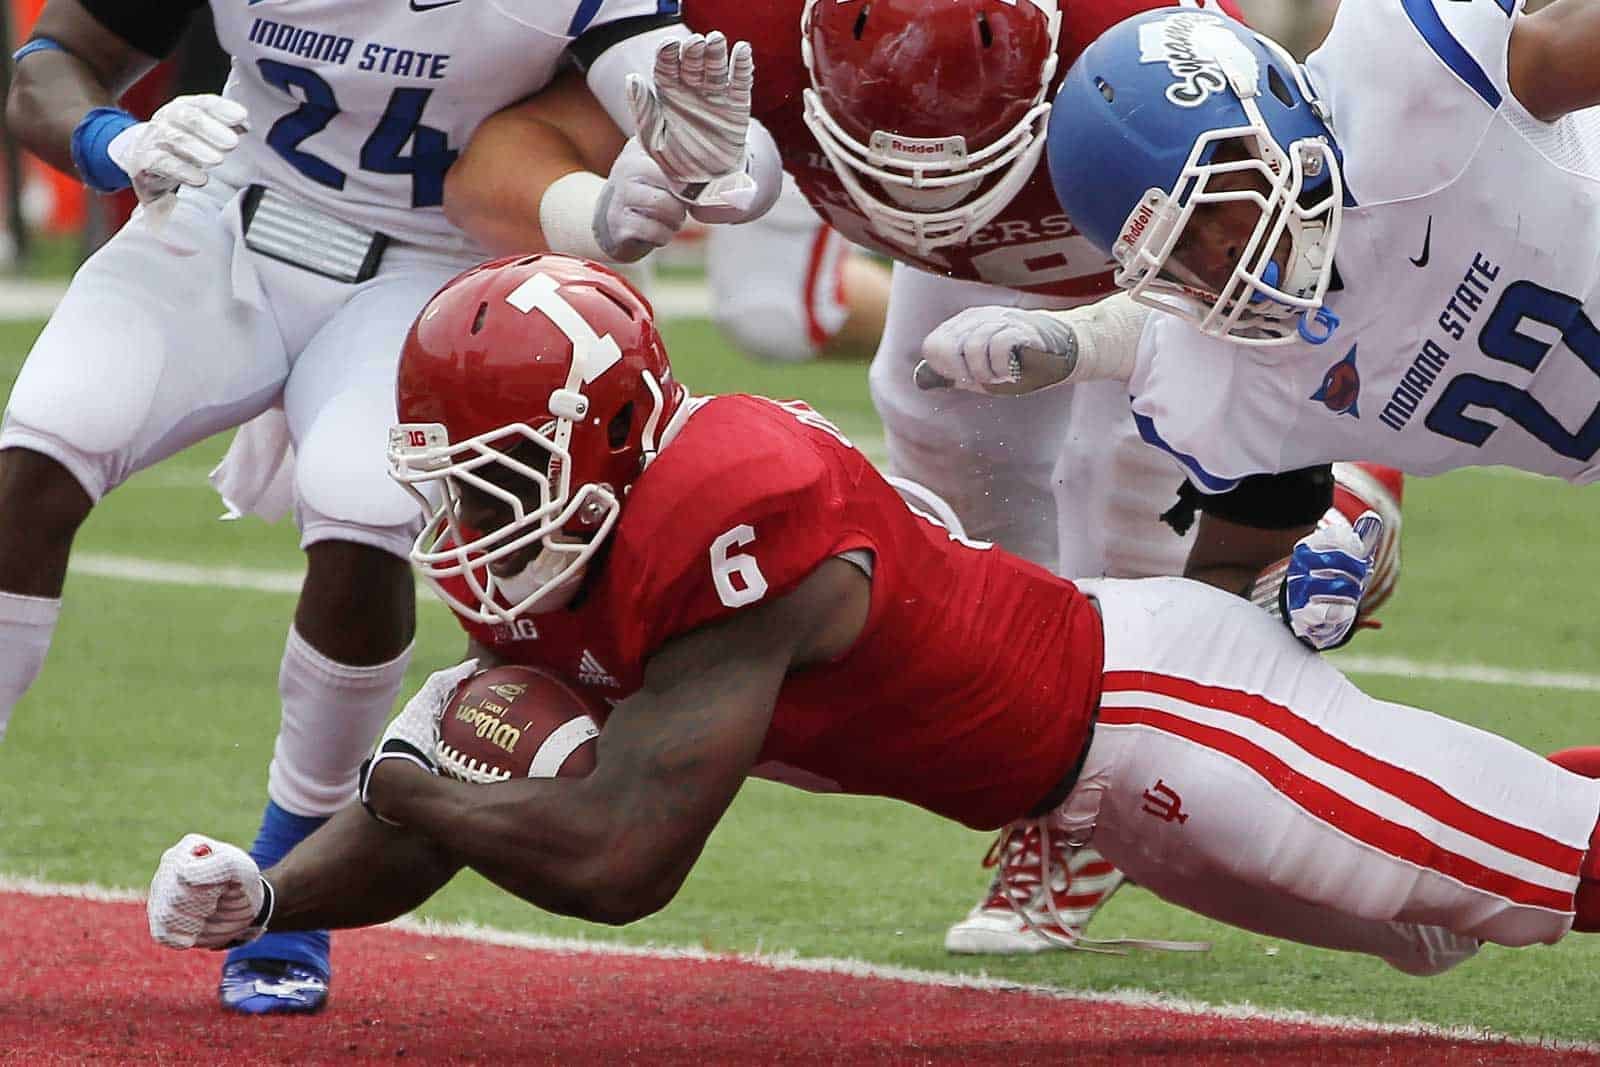 College Football Schedule: Indiana